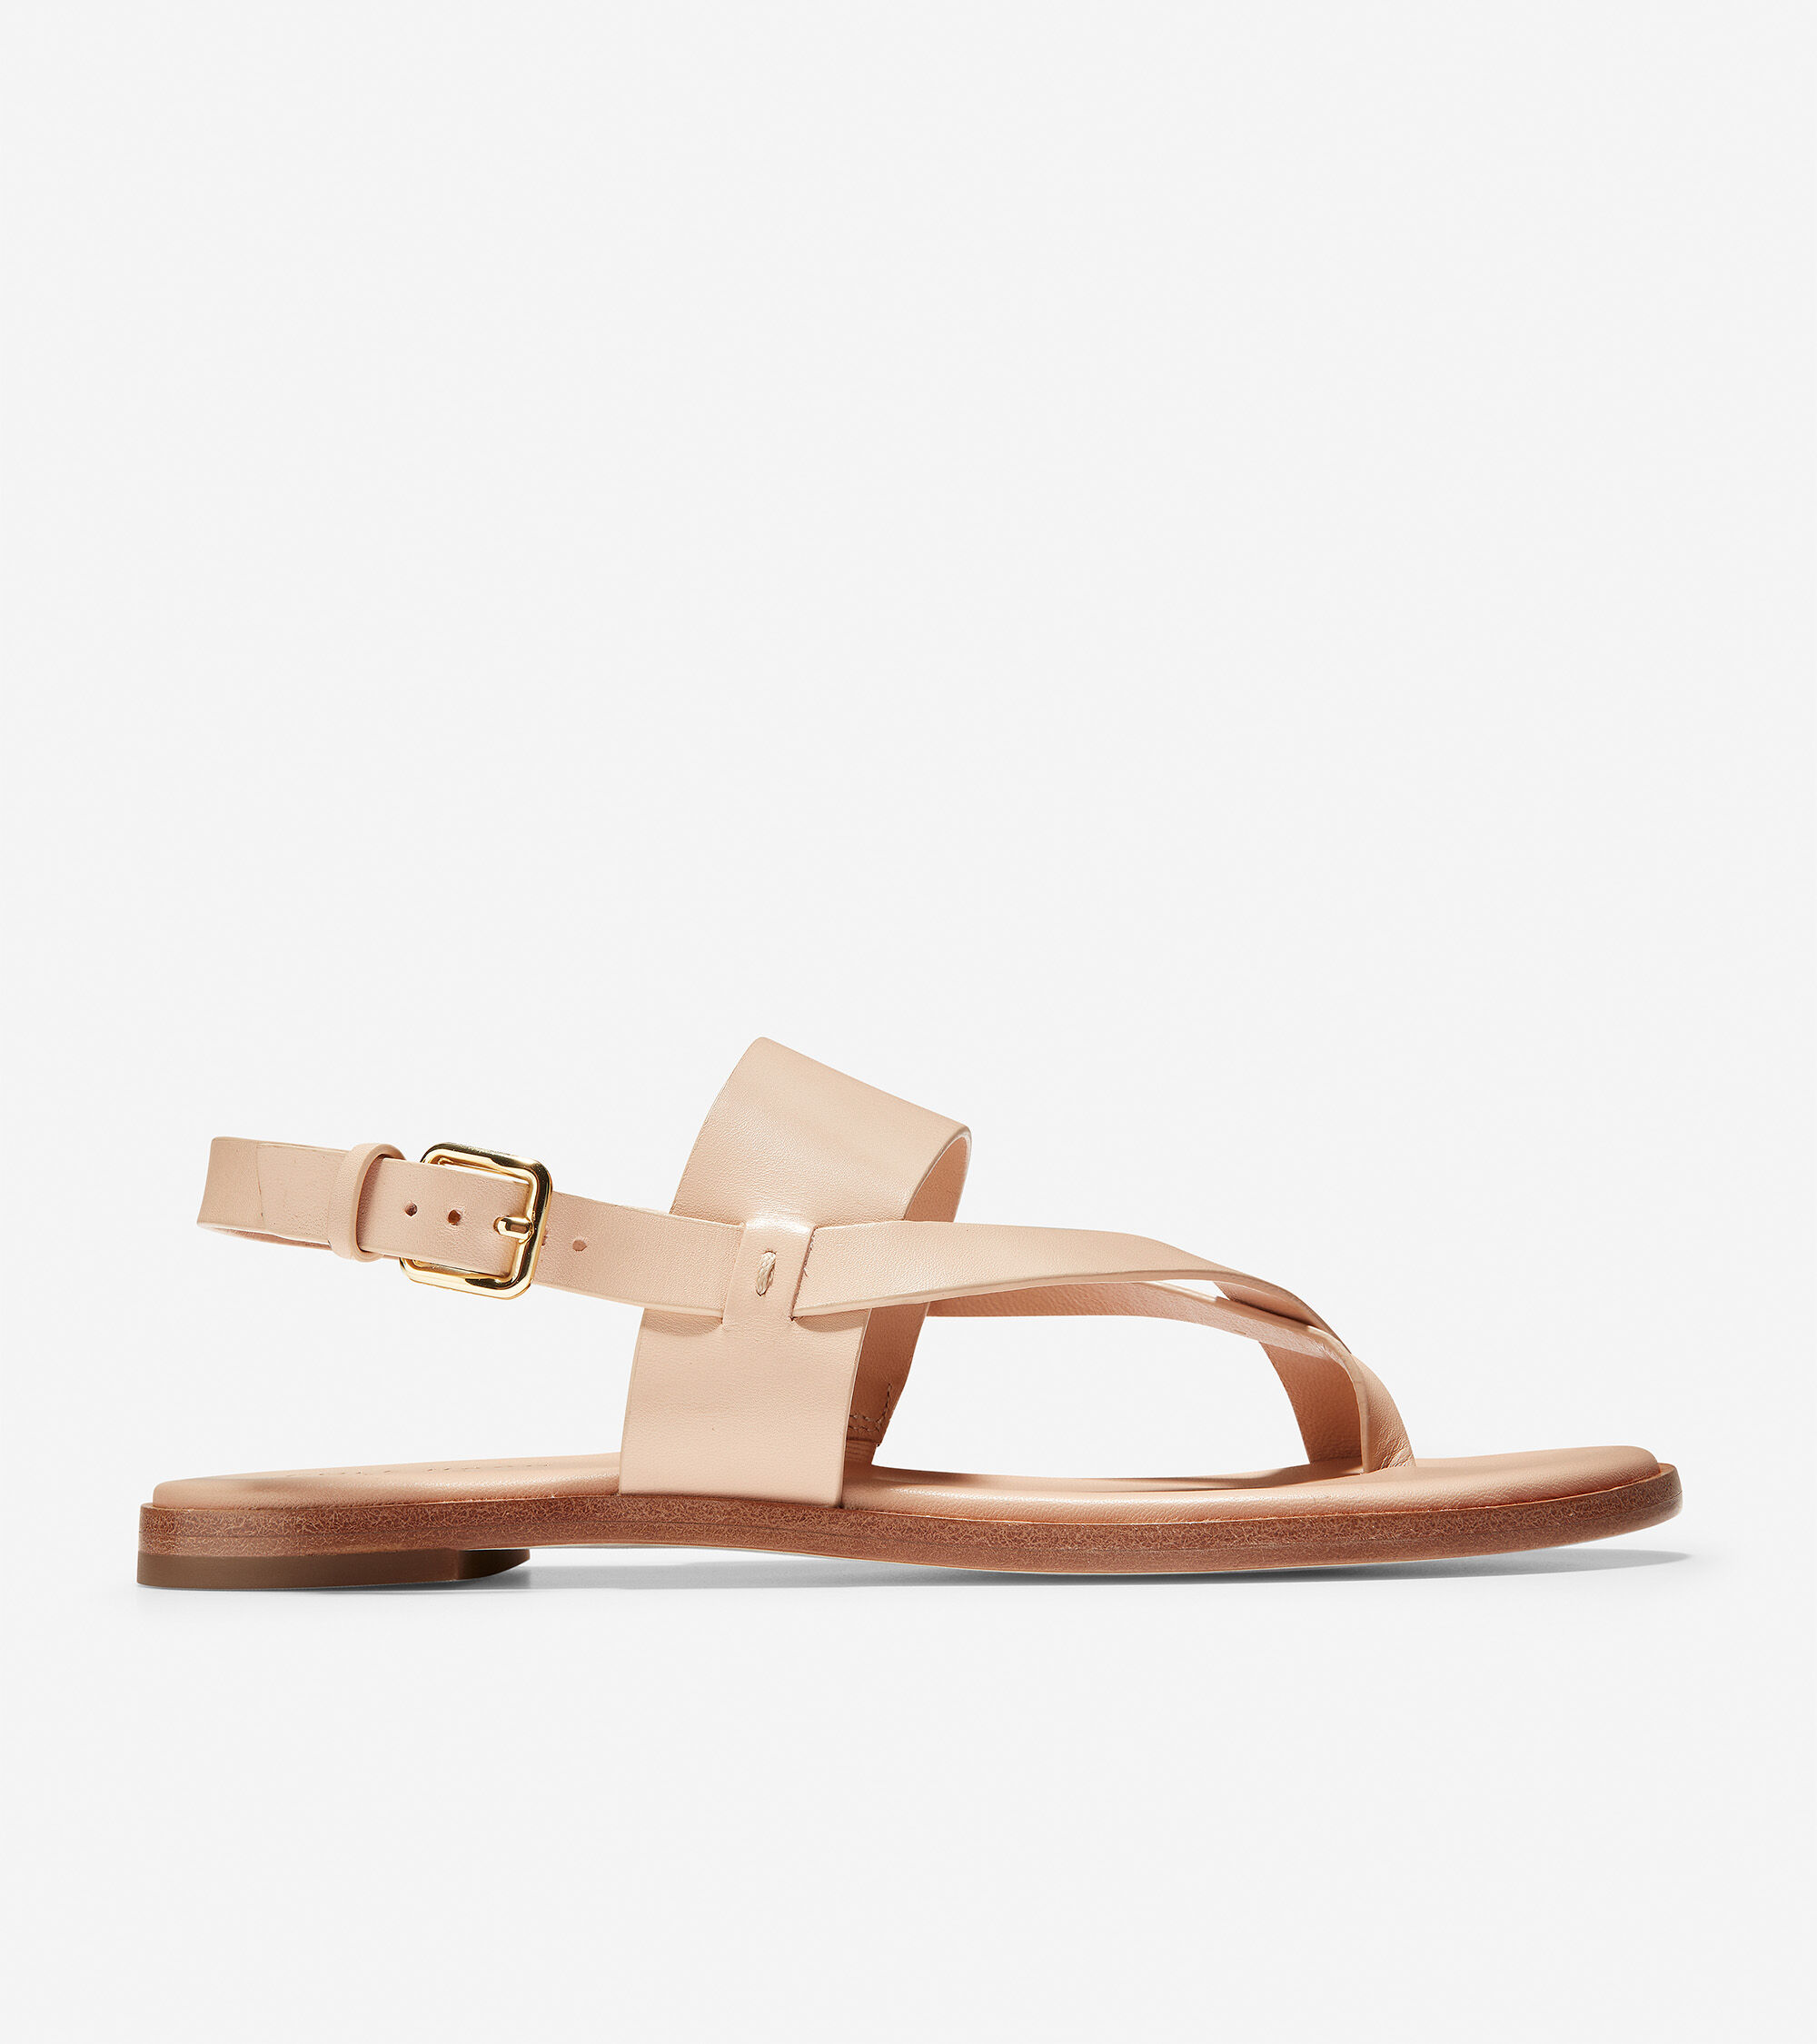 59f68df542d9 Women s Anica Thong Sandals in Nude Leather